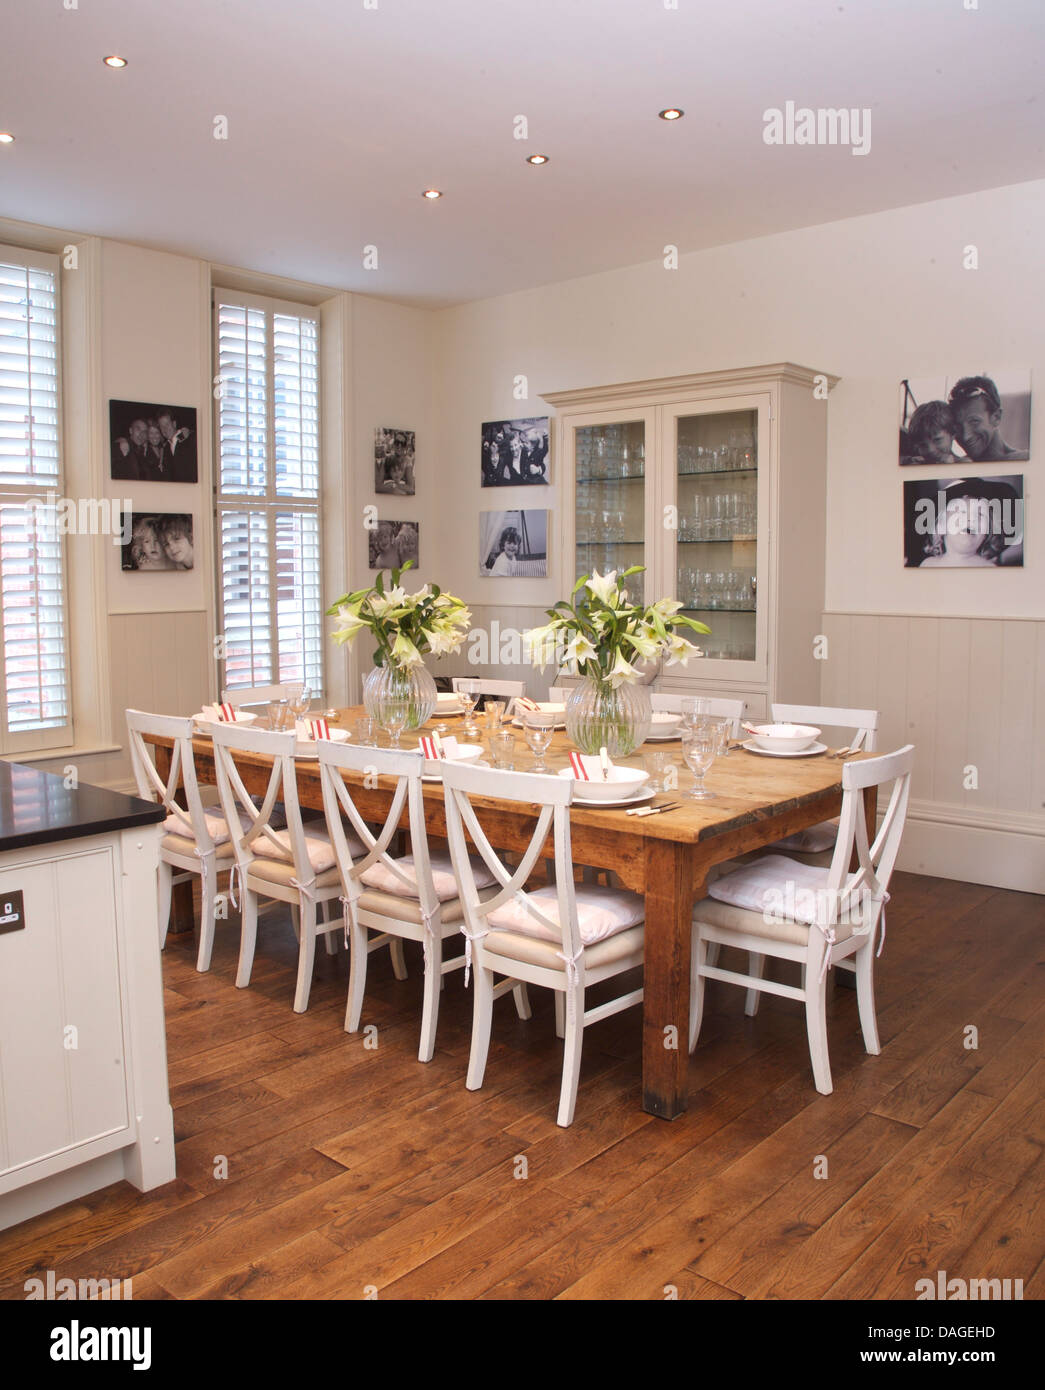 White Chairs At Simple Wood Table In Modern Kitchen Dining Room With Wooden Flooring And Framed Black Photographs